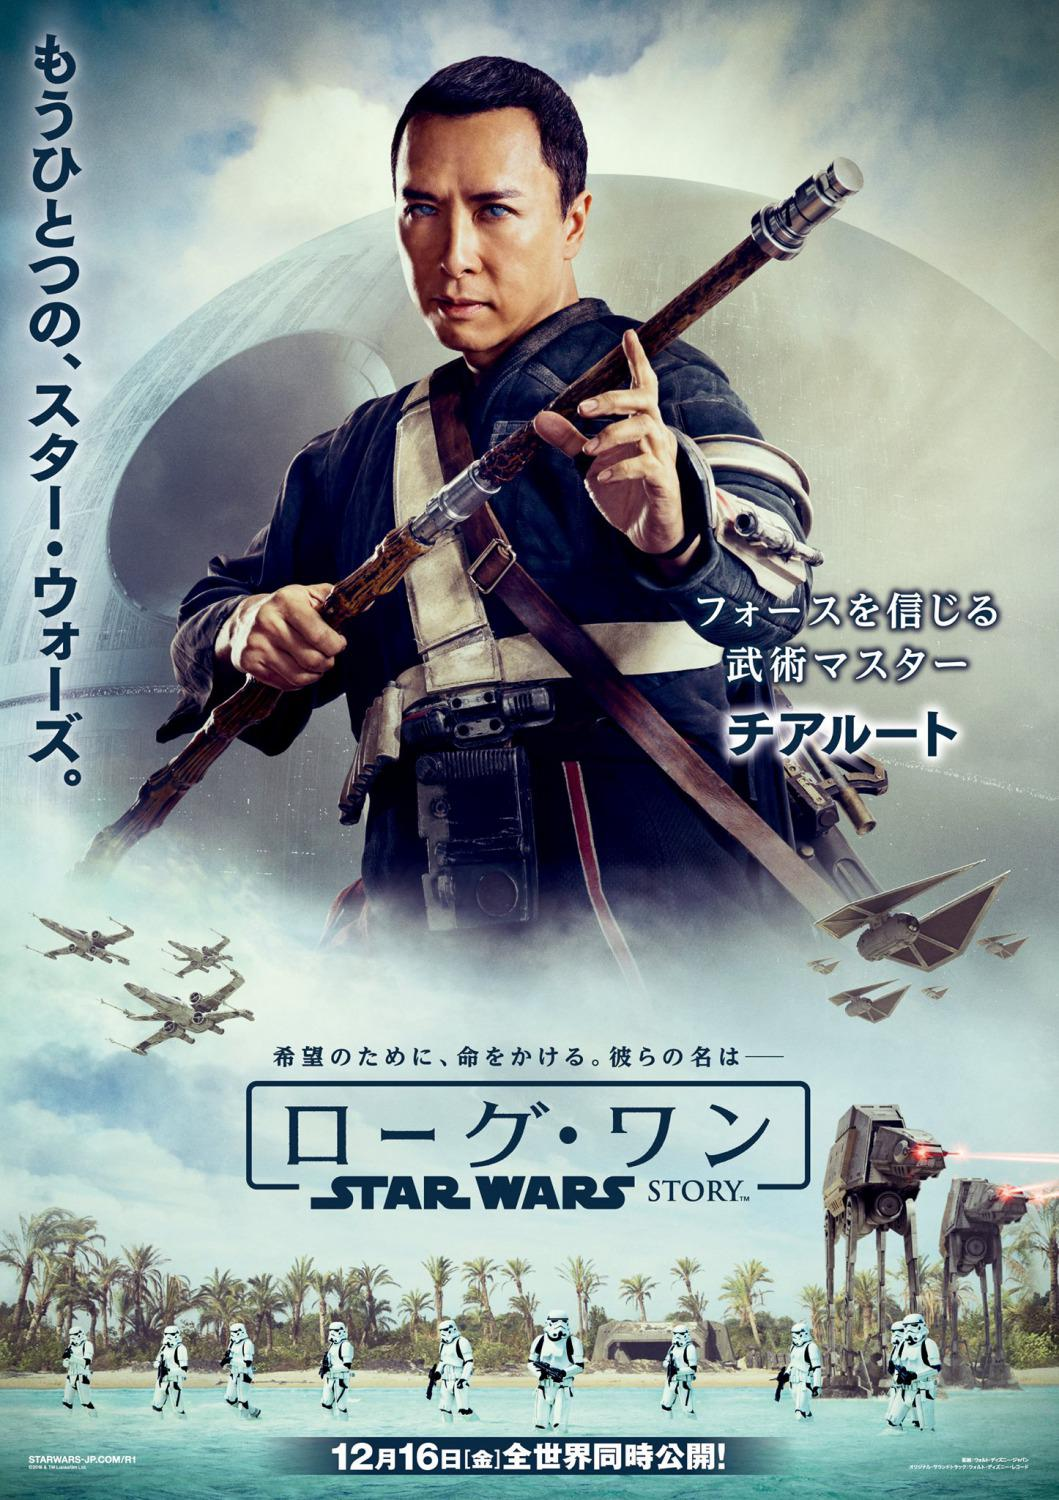 Star Wars - Rogue One a Star Wars story - Donnie Yen - Chirrut Îmwe